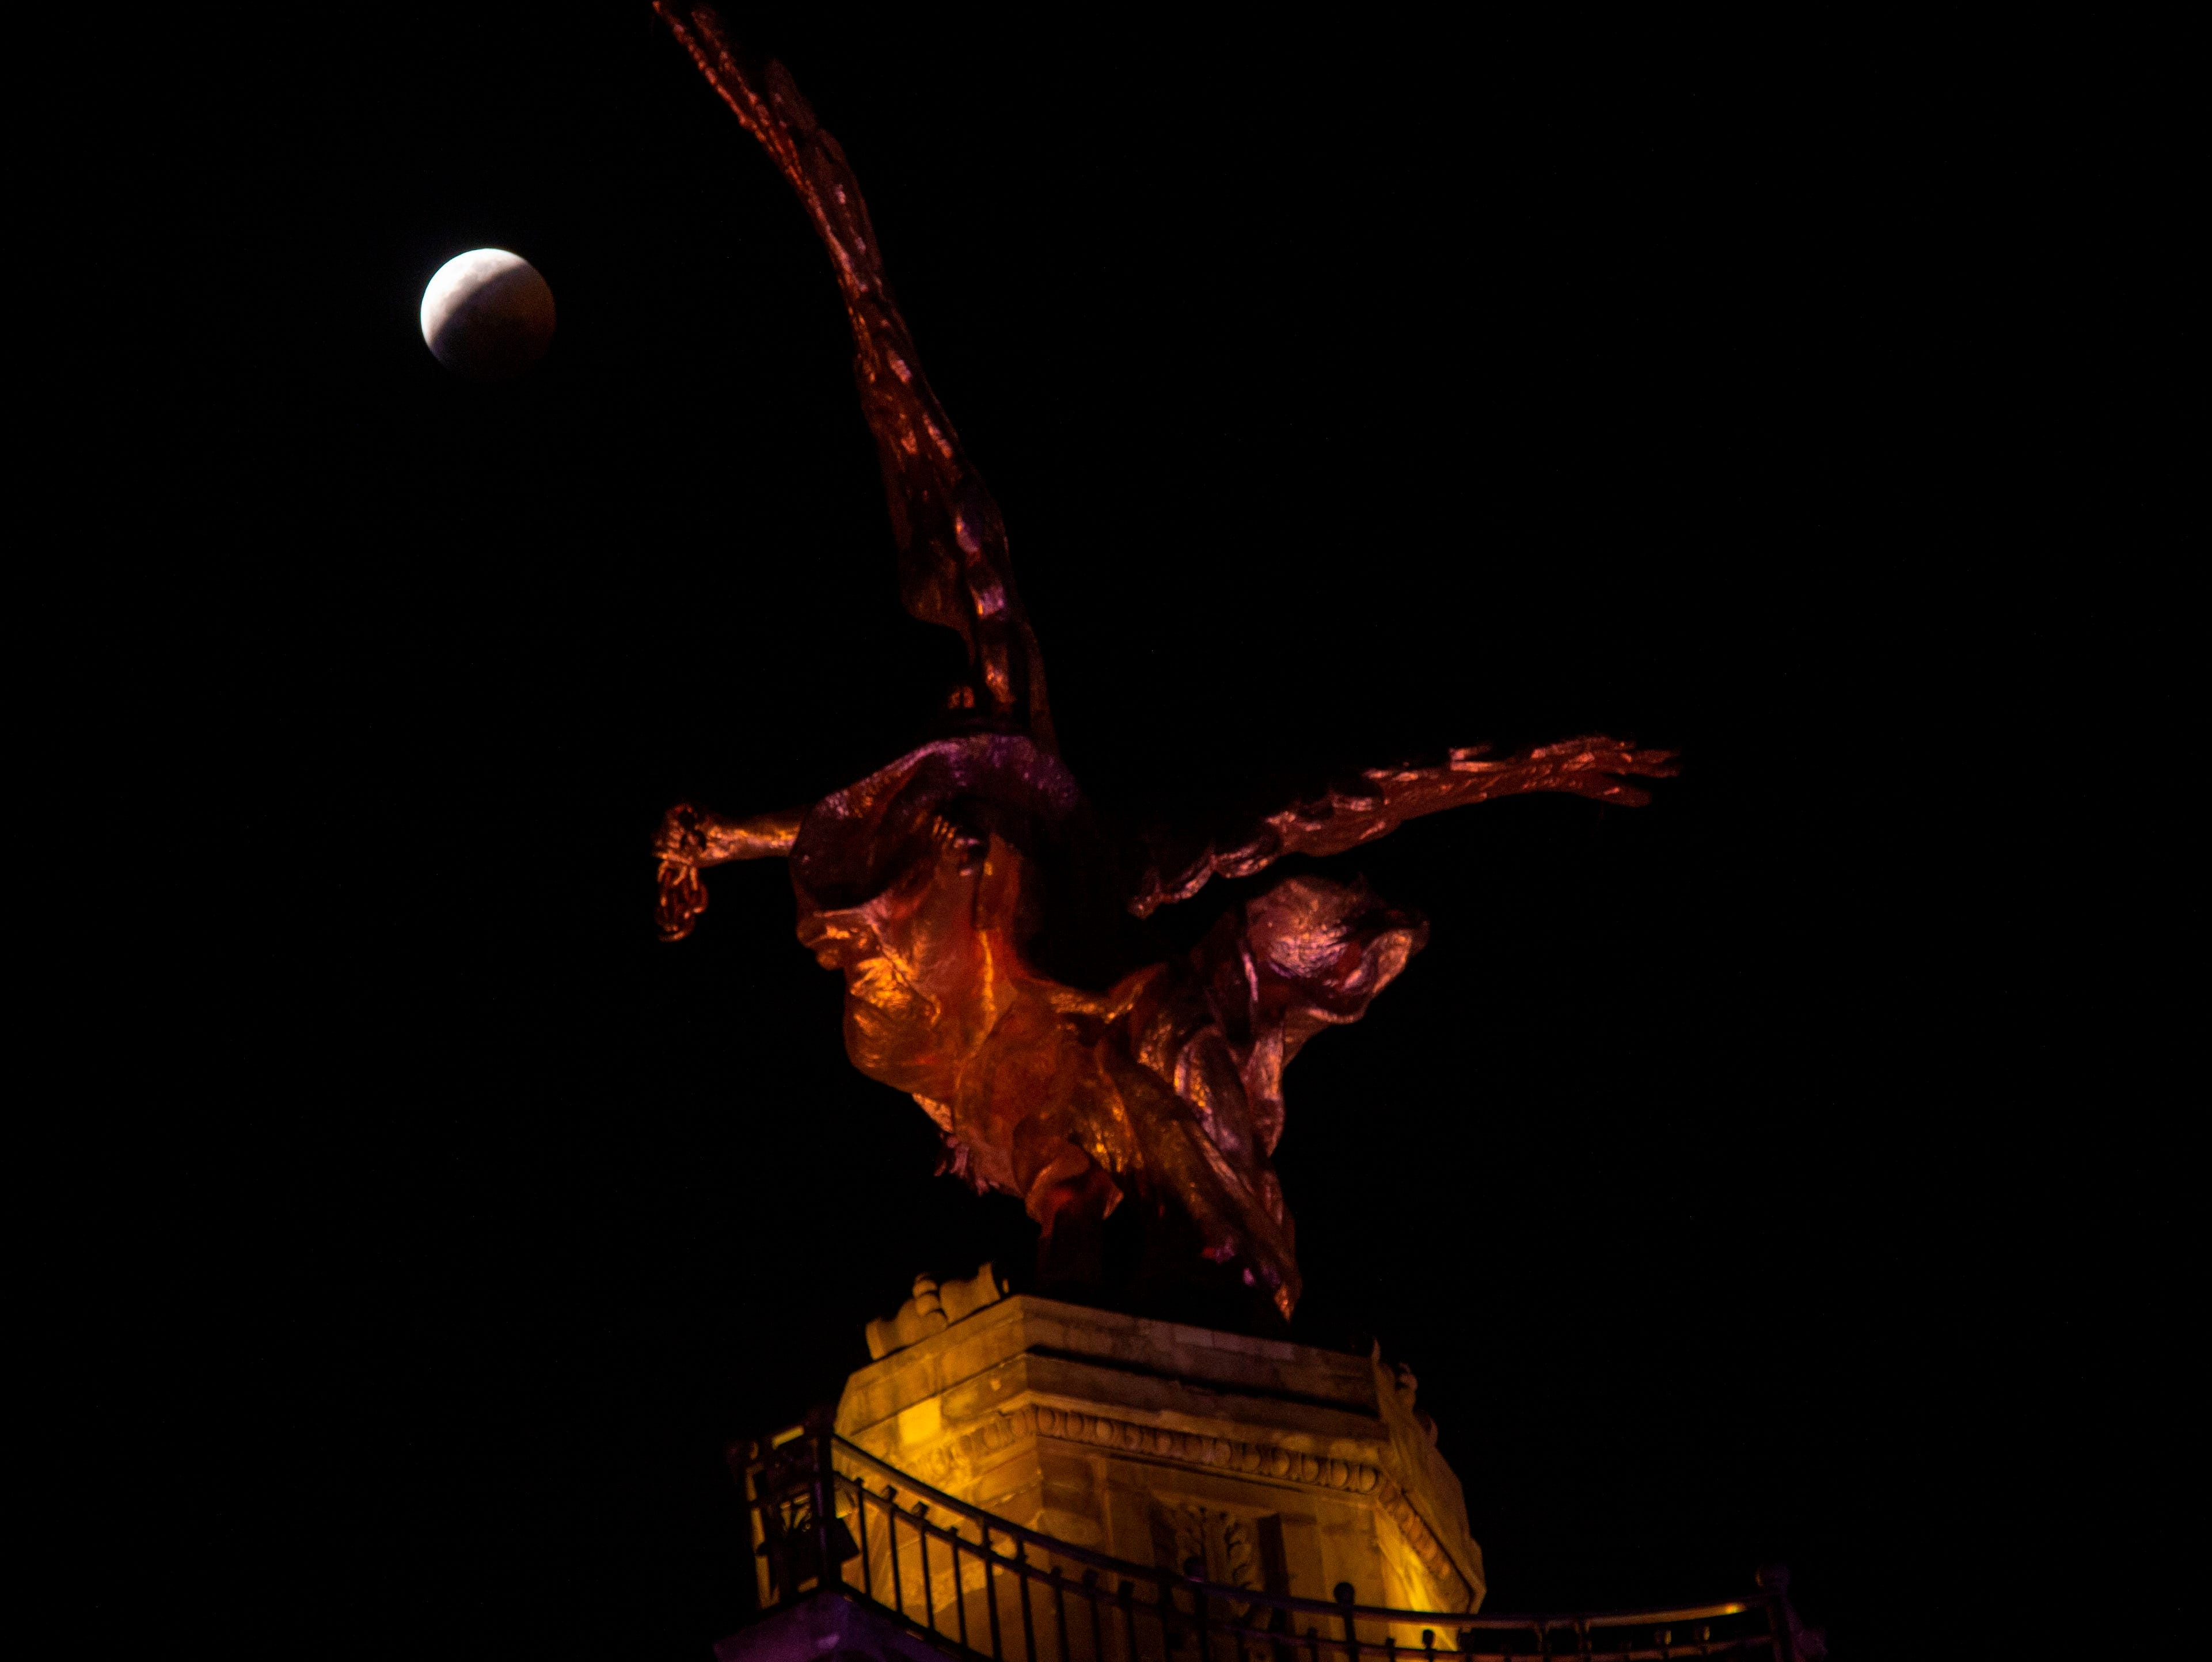 The so-called Super Blood Wolf Moon slips into Earth's dark umbral shadow during a total lunar eclipse over Angel de la Independencia in Mexico City on January 20, 2019. - An unusual set of celestial circumstances comes together Sunday for skywatchers in Europe, Africa and the Americas, where a total lunar eclipse may be glimpsed, offering a view of a large, red Moon. (Photo by ALFREDO ESTRELLA / AFP)ALFREDO ESTRELLA/AFP/Getty Images